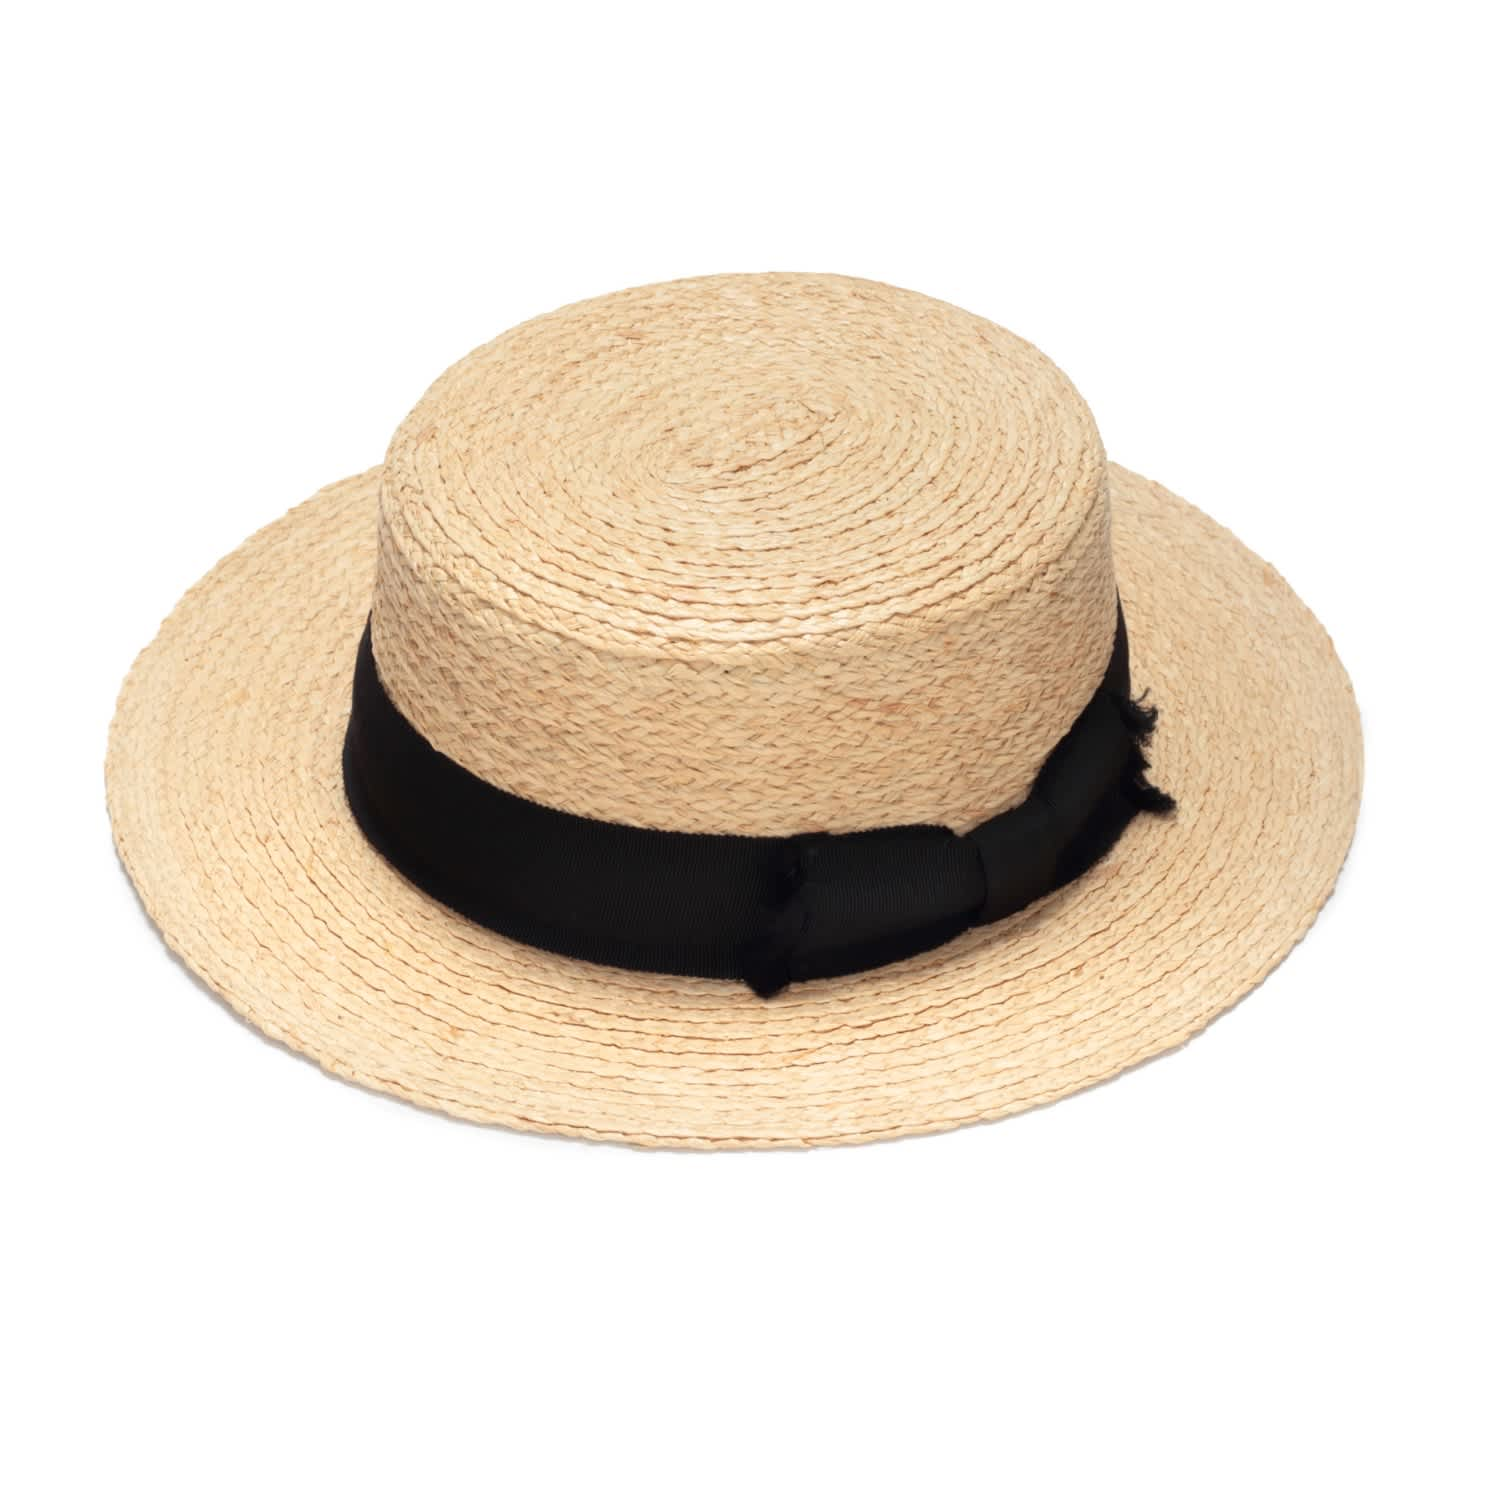 5db1ae4968e24 Classic Boater Straw Hat image